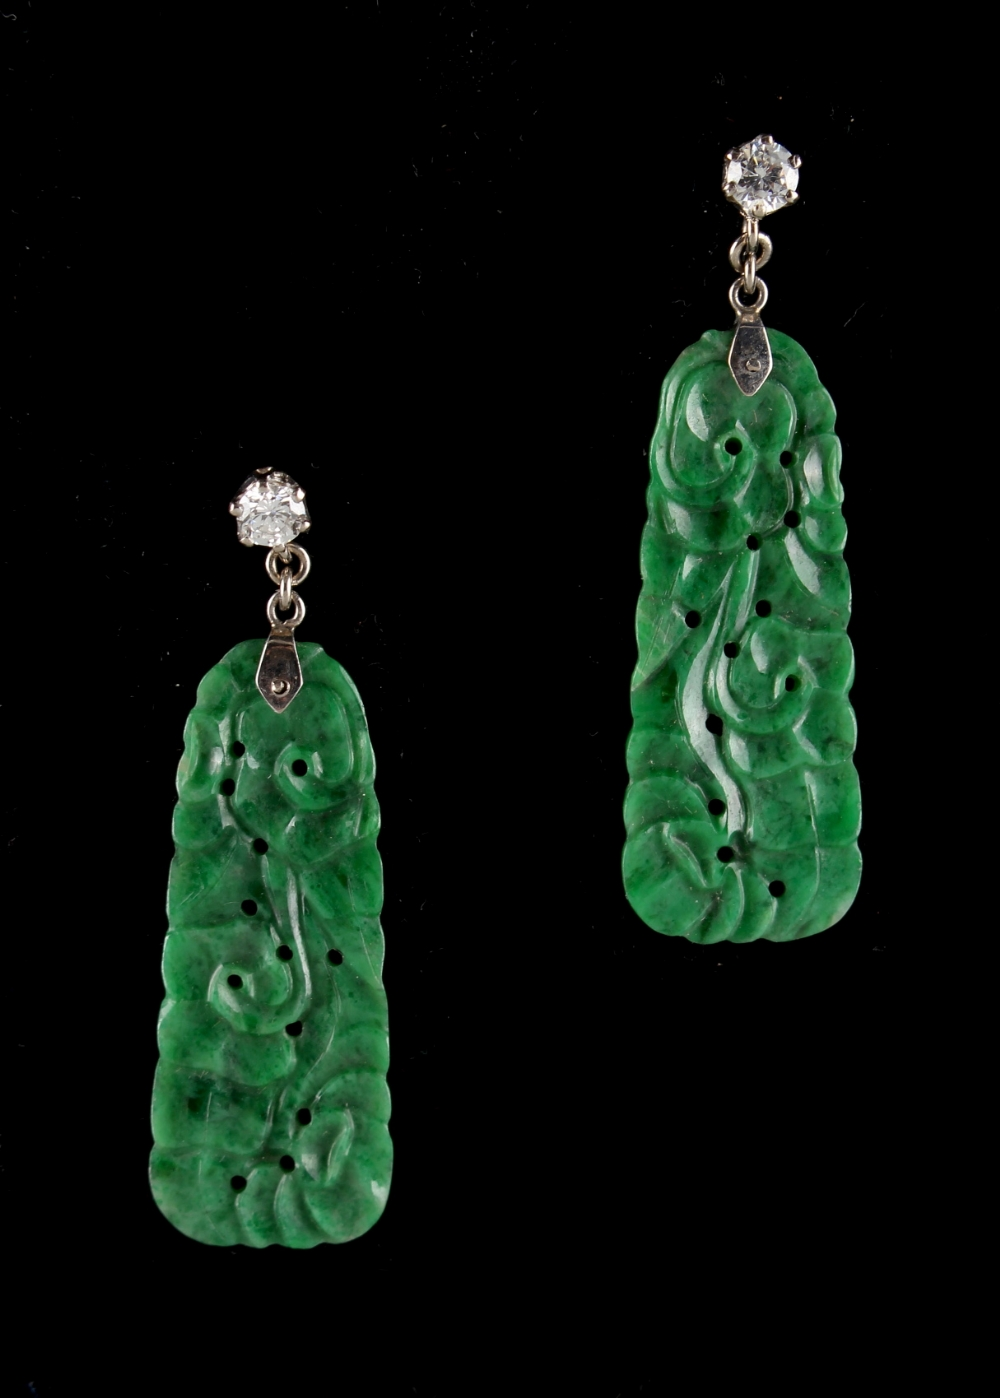 Lot 214 - A pair of Chinese carved & pierced jadeite pendant earrings, the certificated untreated jadeite